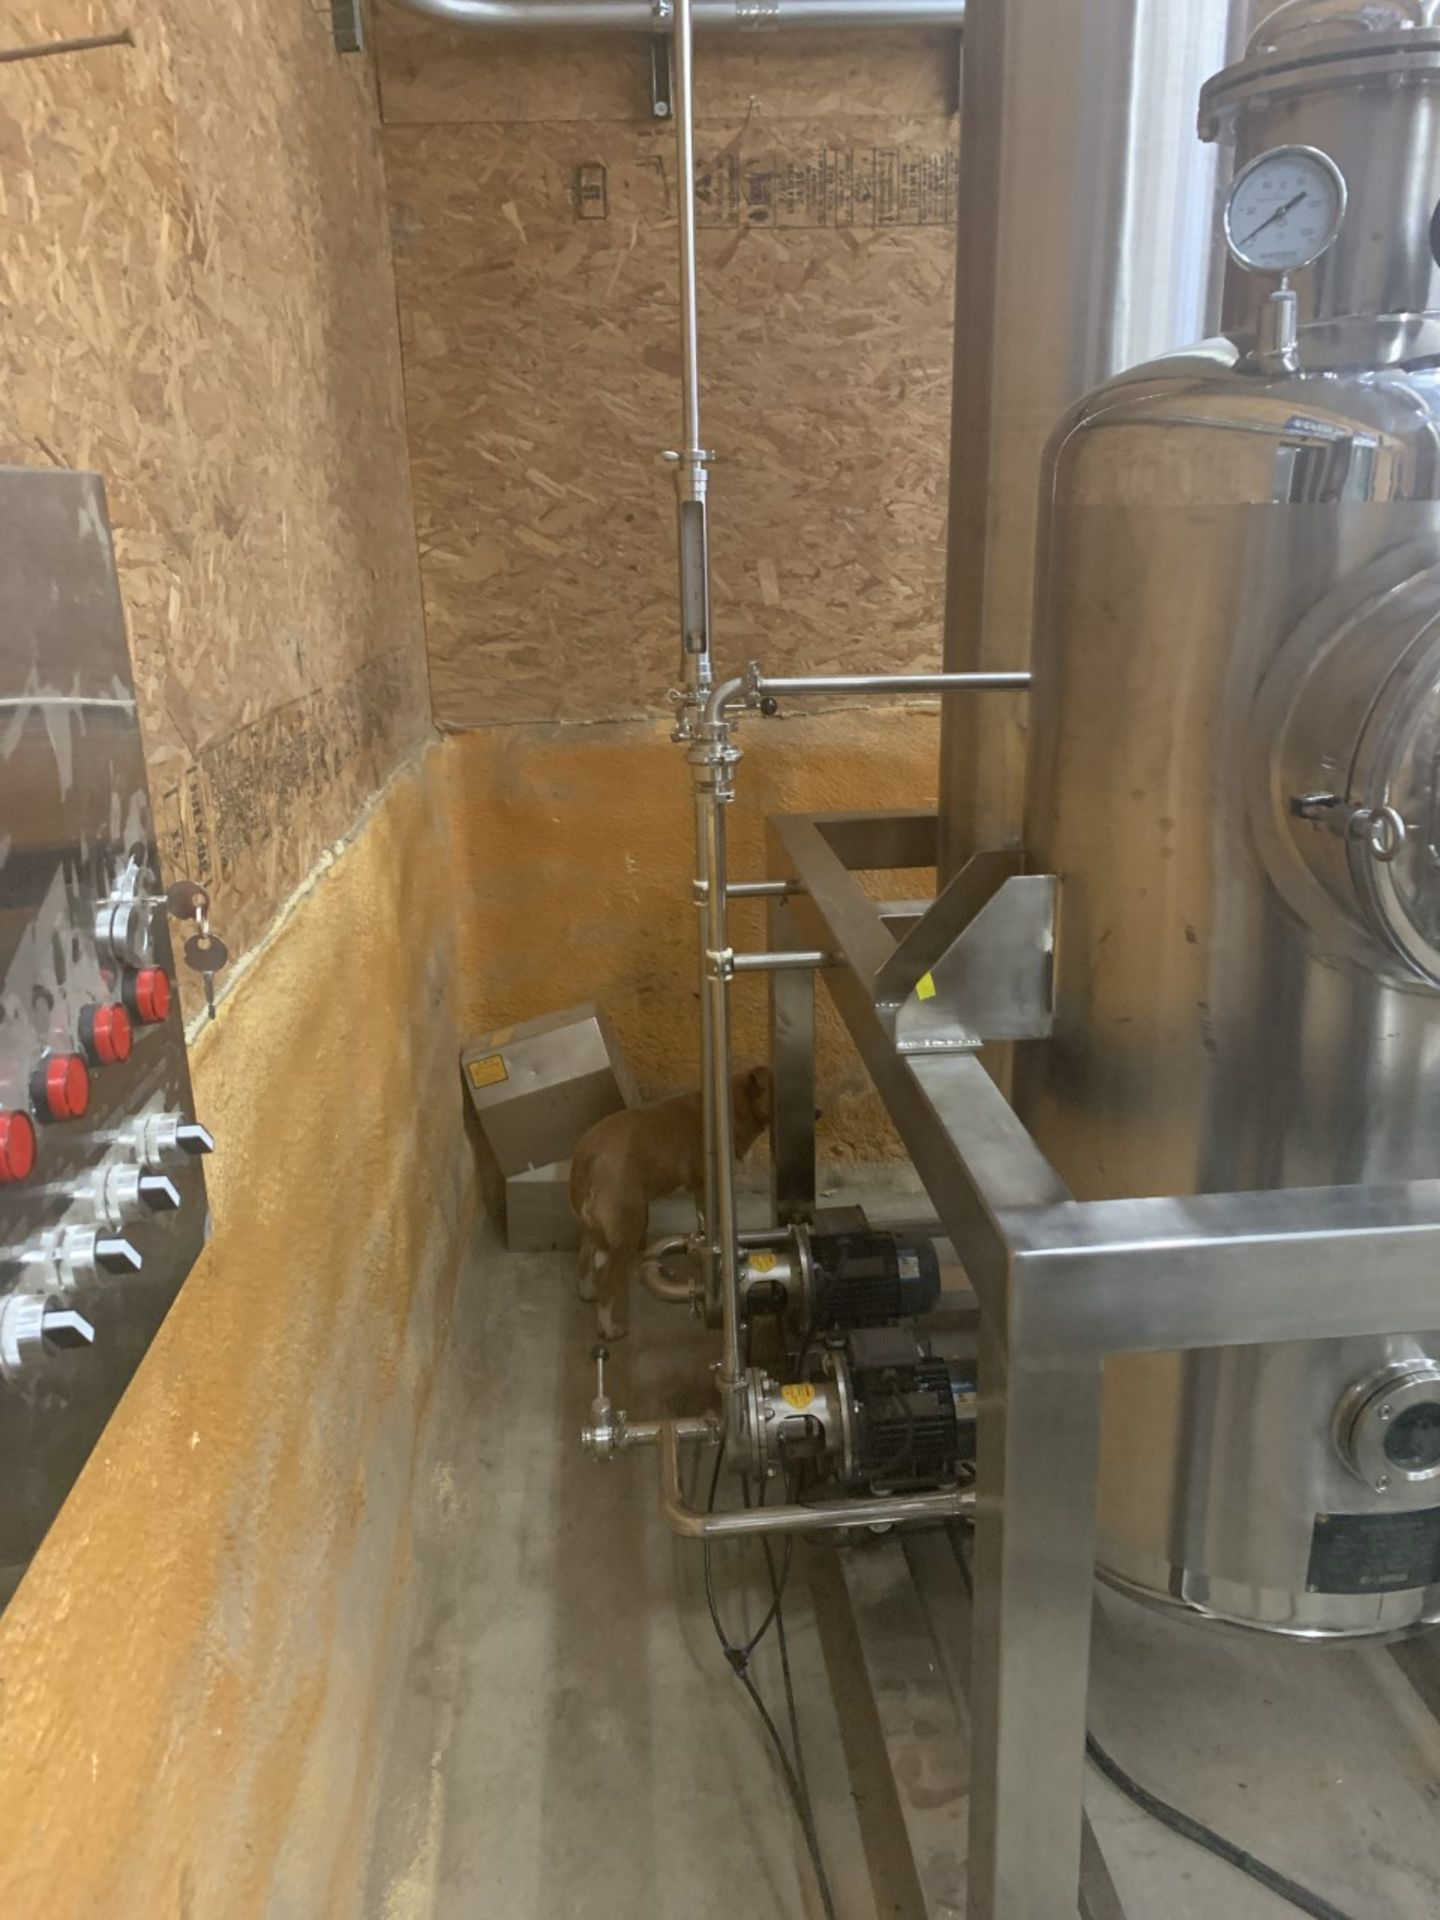 Used Henan Lanphan Industry Co. Hemp Extraction Centrifuge. Model PP-45. 20 lbs per batch - Image 2 of 3